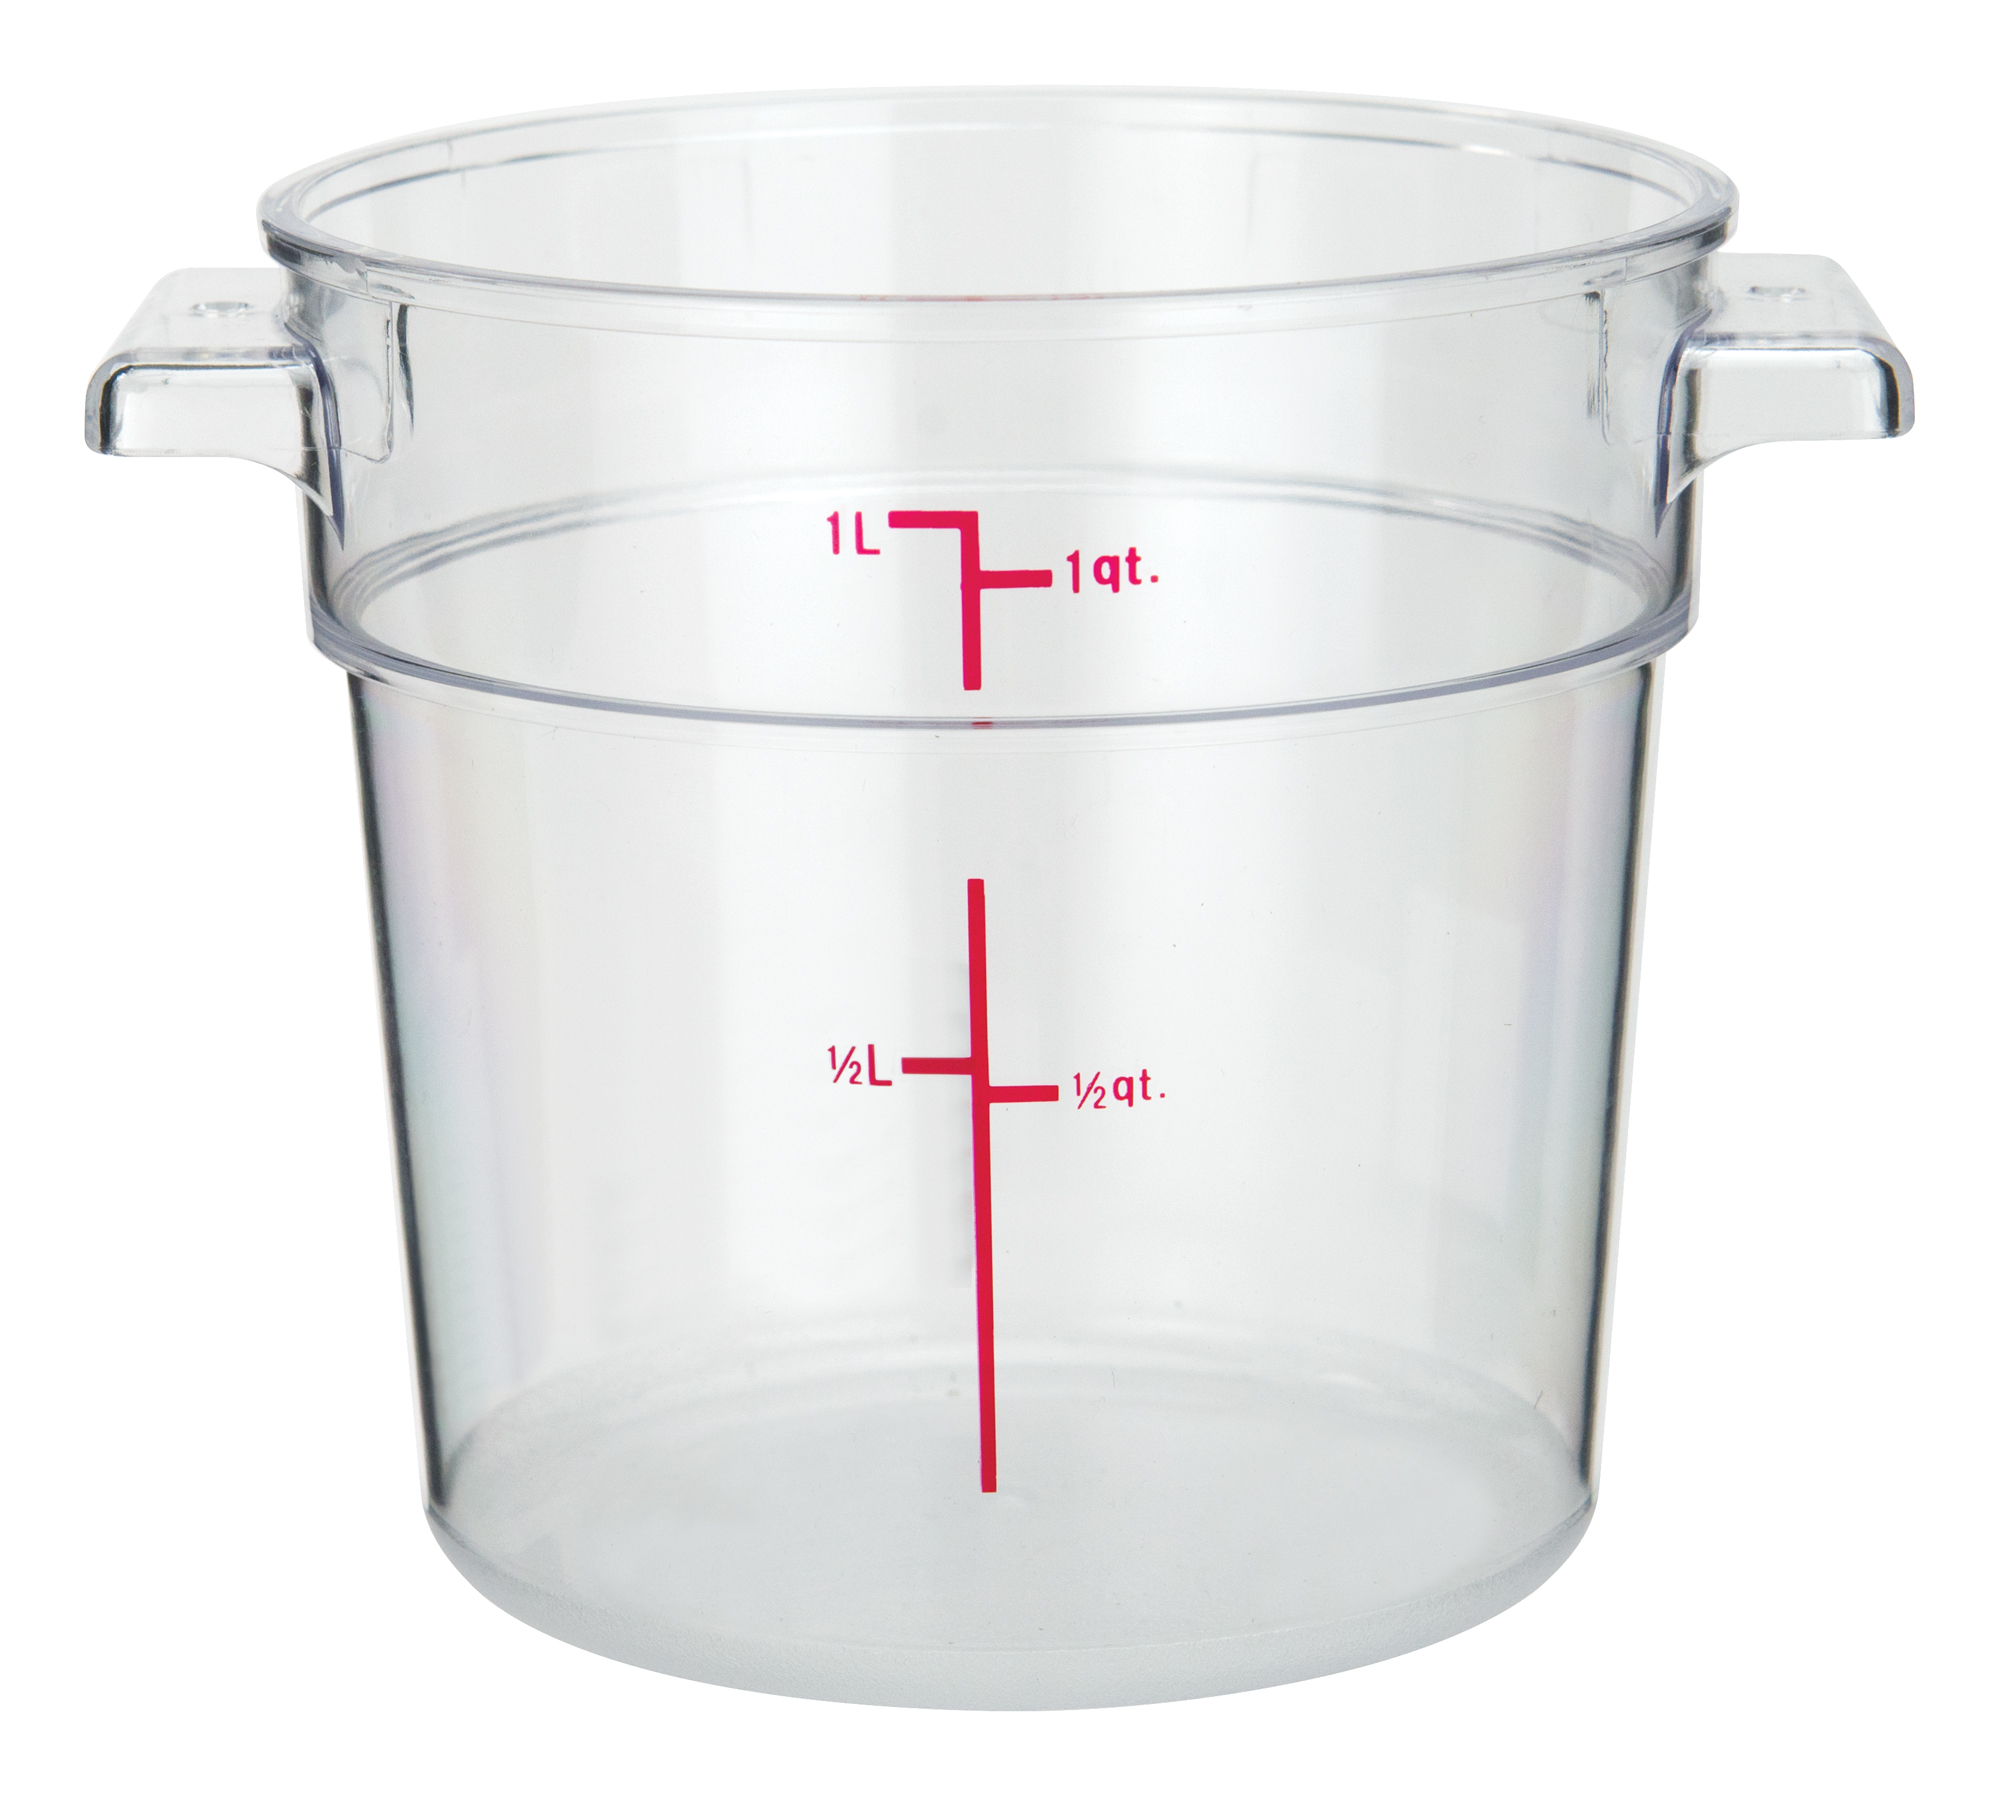 Winco PCRC-1 round food storage containers